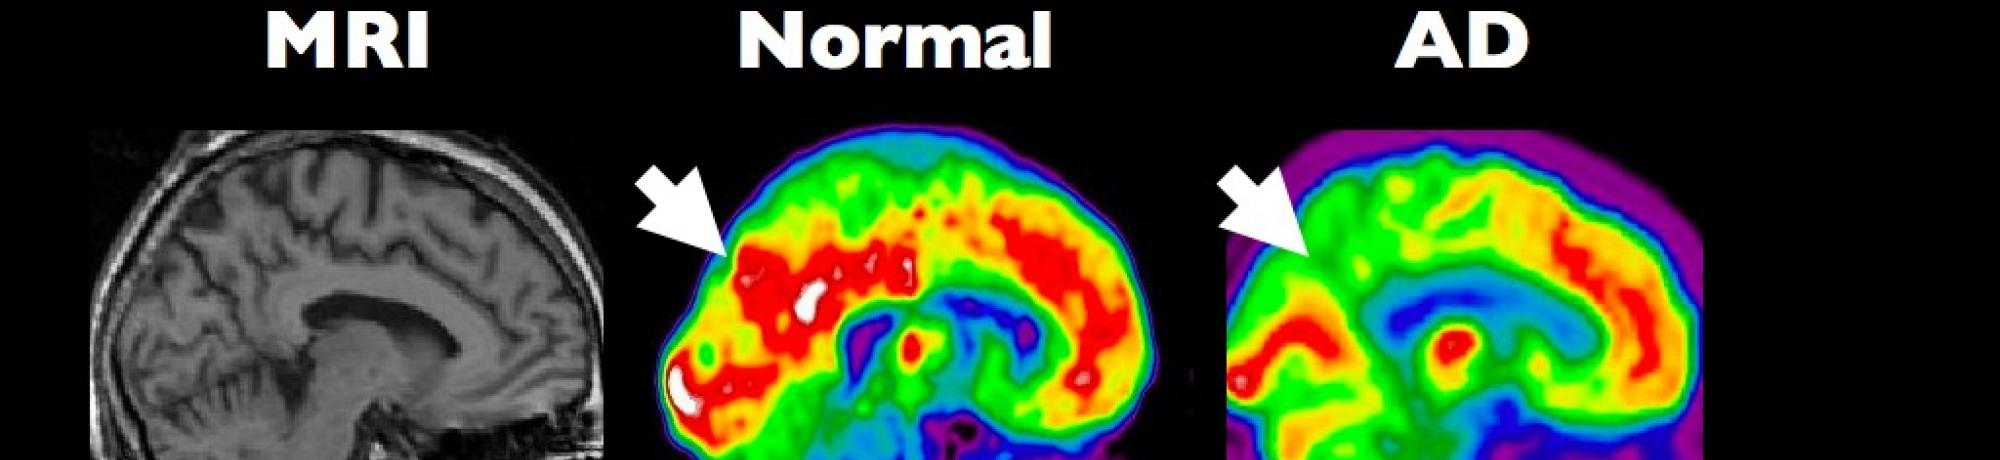 Scan of normal vs. Alzheimer's brain